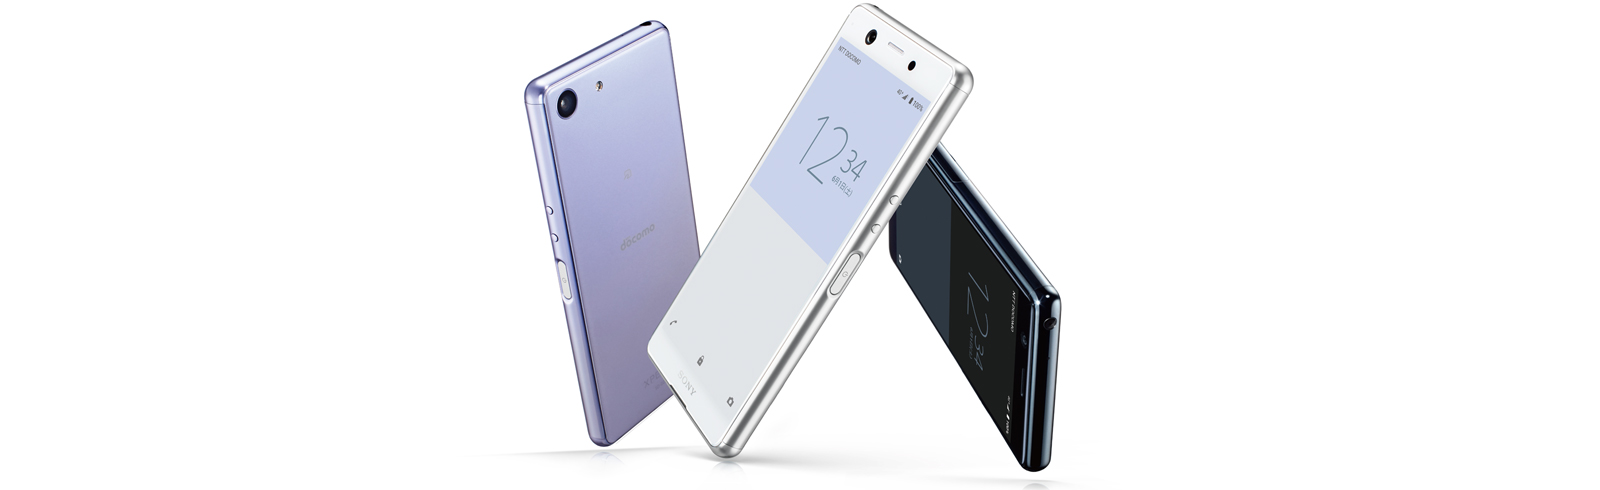 Sony unveils the compact Xperia Ace in Japan